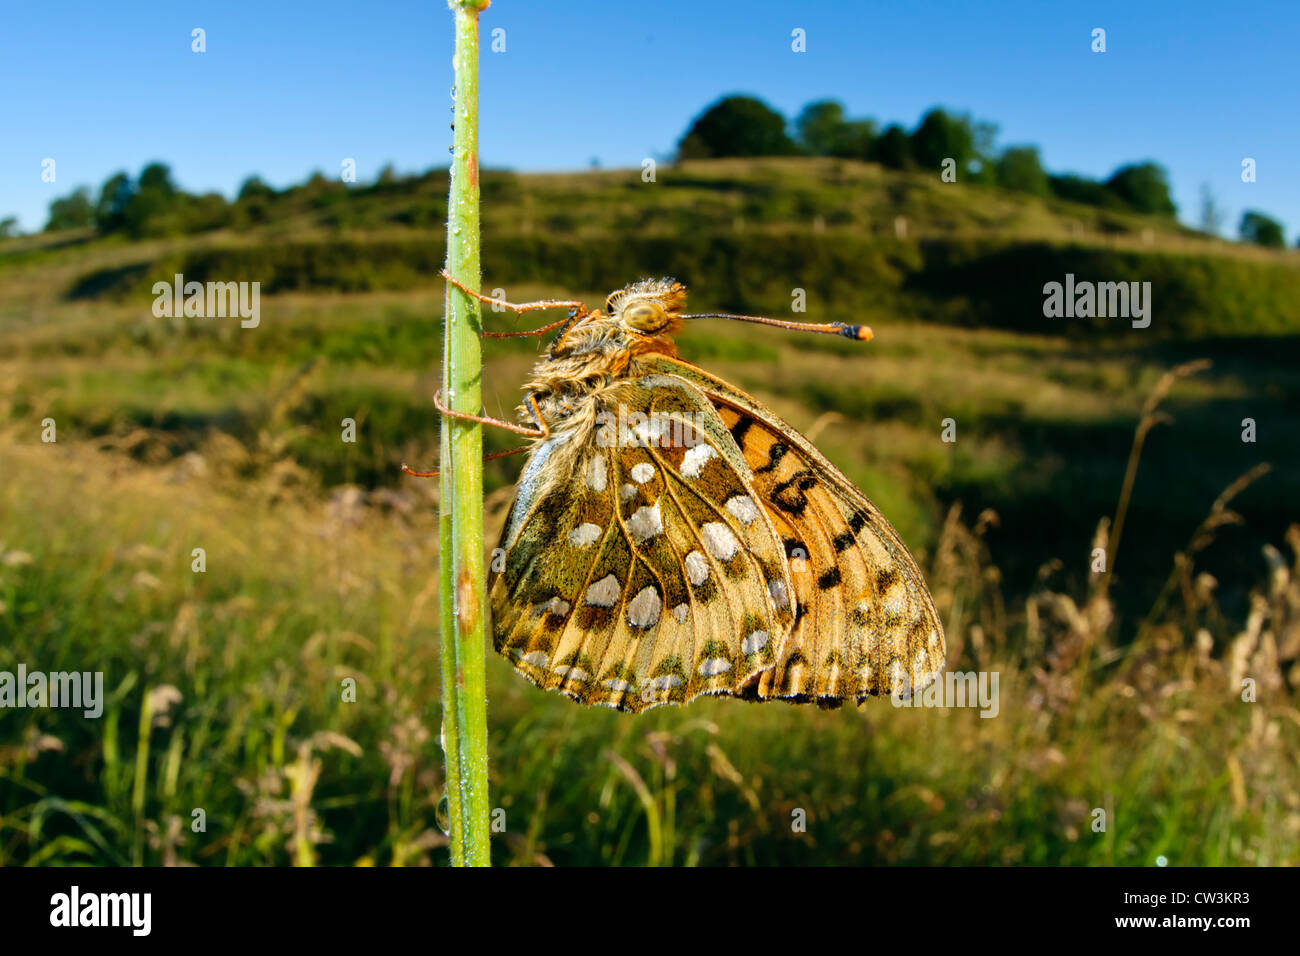 Dark green fritillary butterfly dans un habitat herbeux Photo Stock